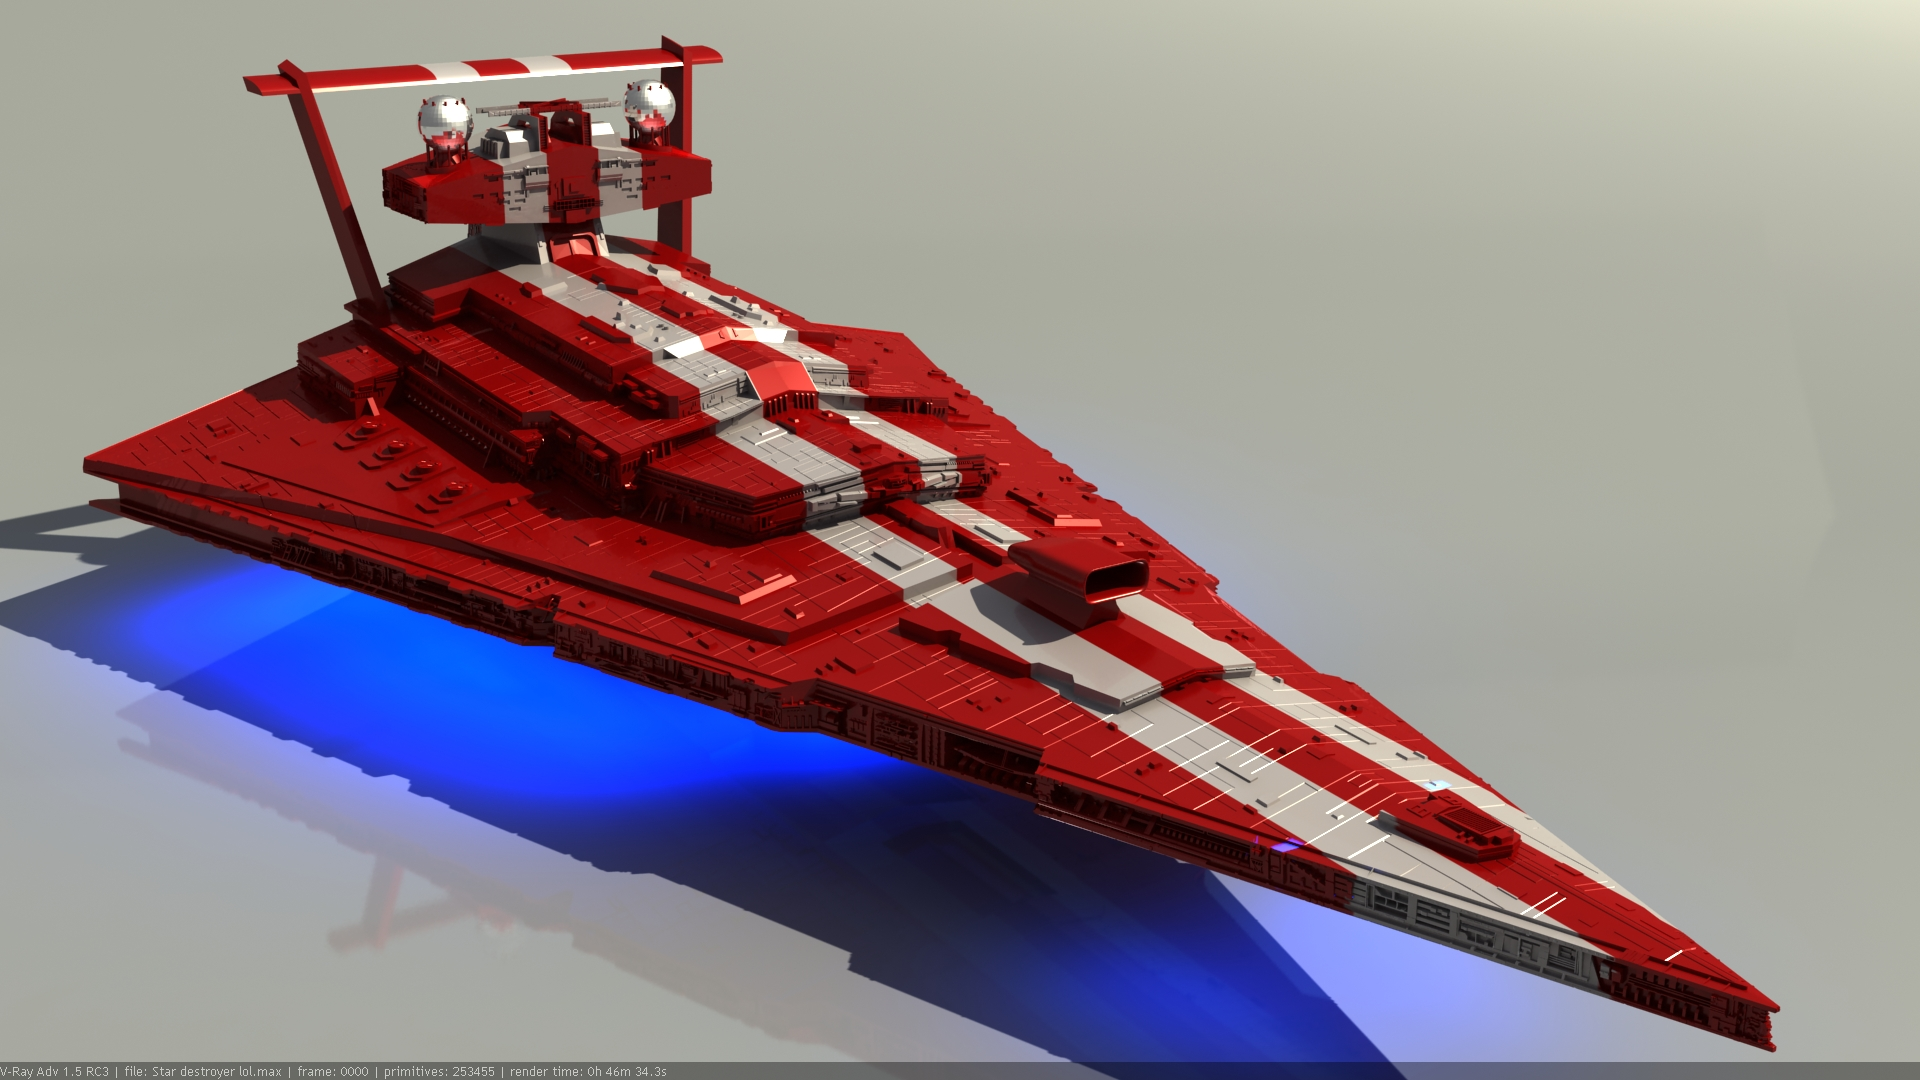 pimped_star_destroyer_by_affet_kak.jpg